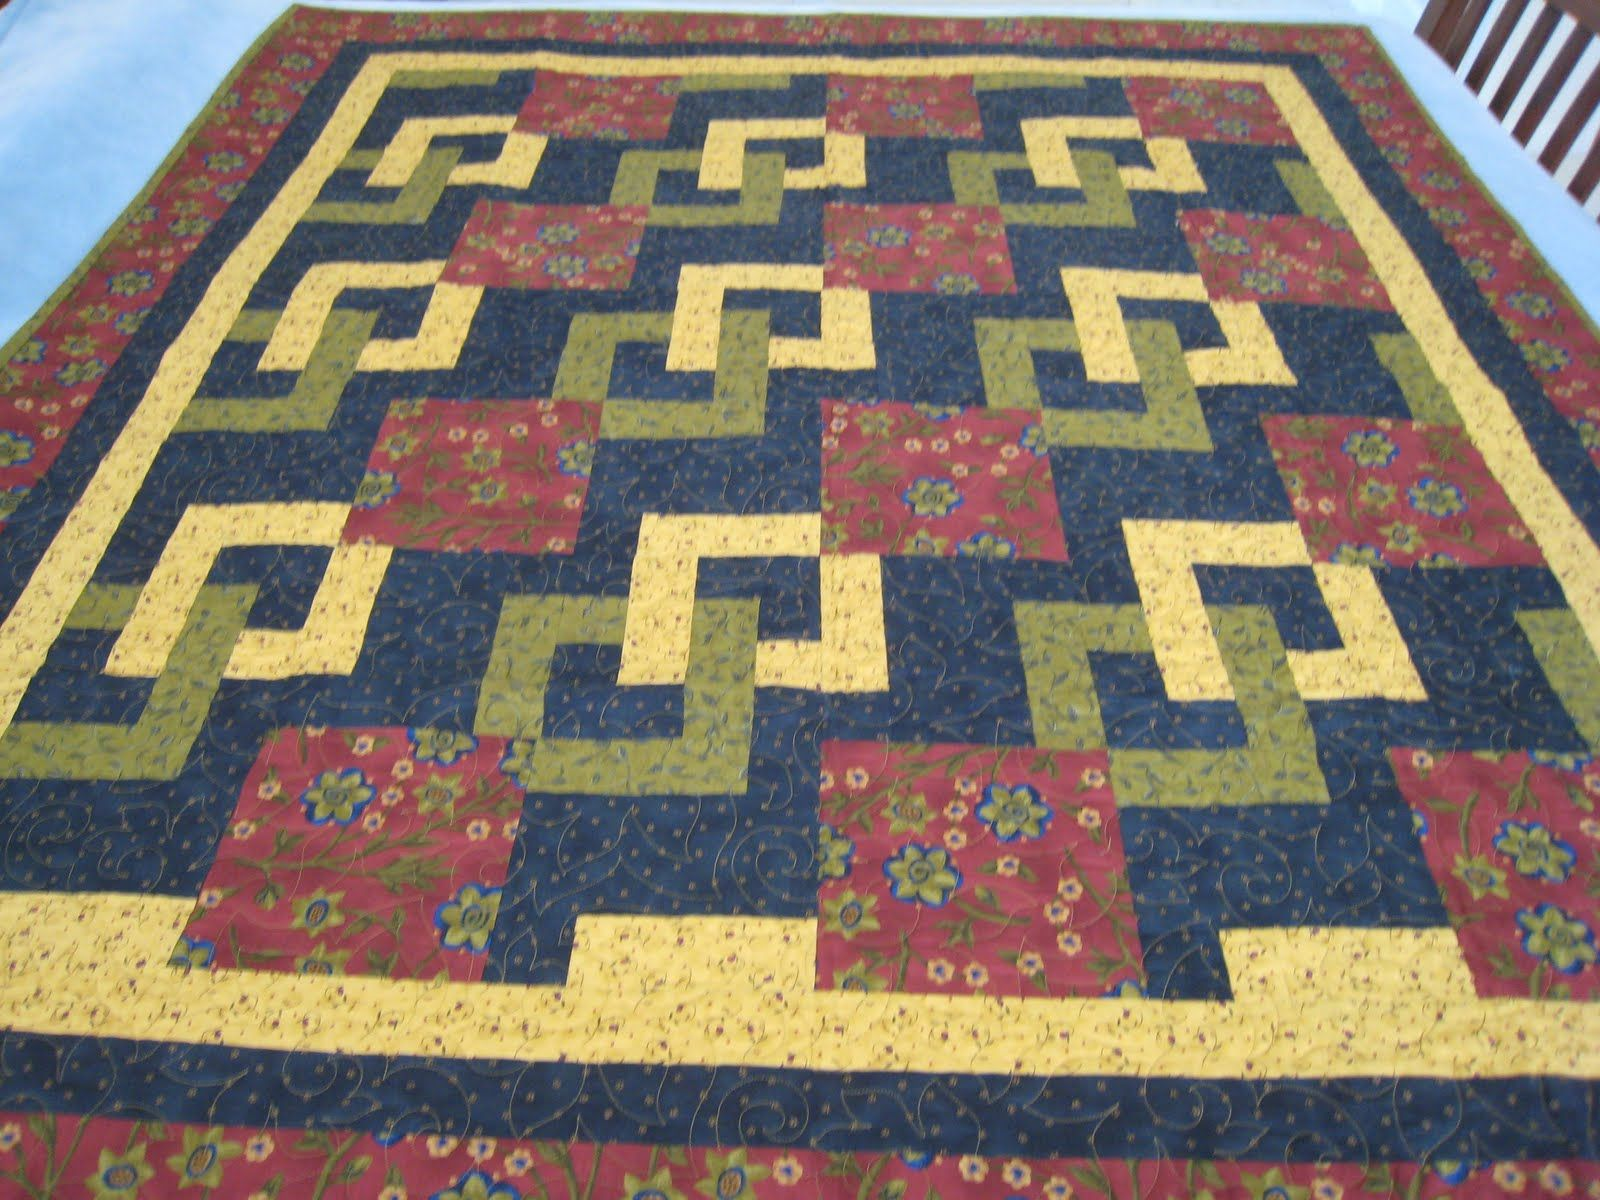 5 yard quilt patterns free | It is from a book called "|1600|1200|?|en|2|b54a780c71182a06ffba1849cab1d055|False|UNLIKELY|0.2822693884372711